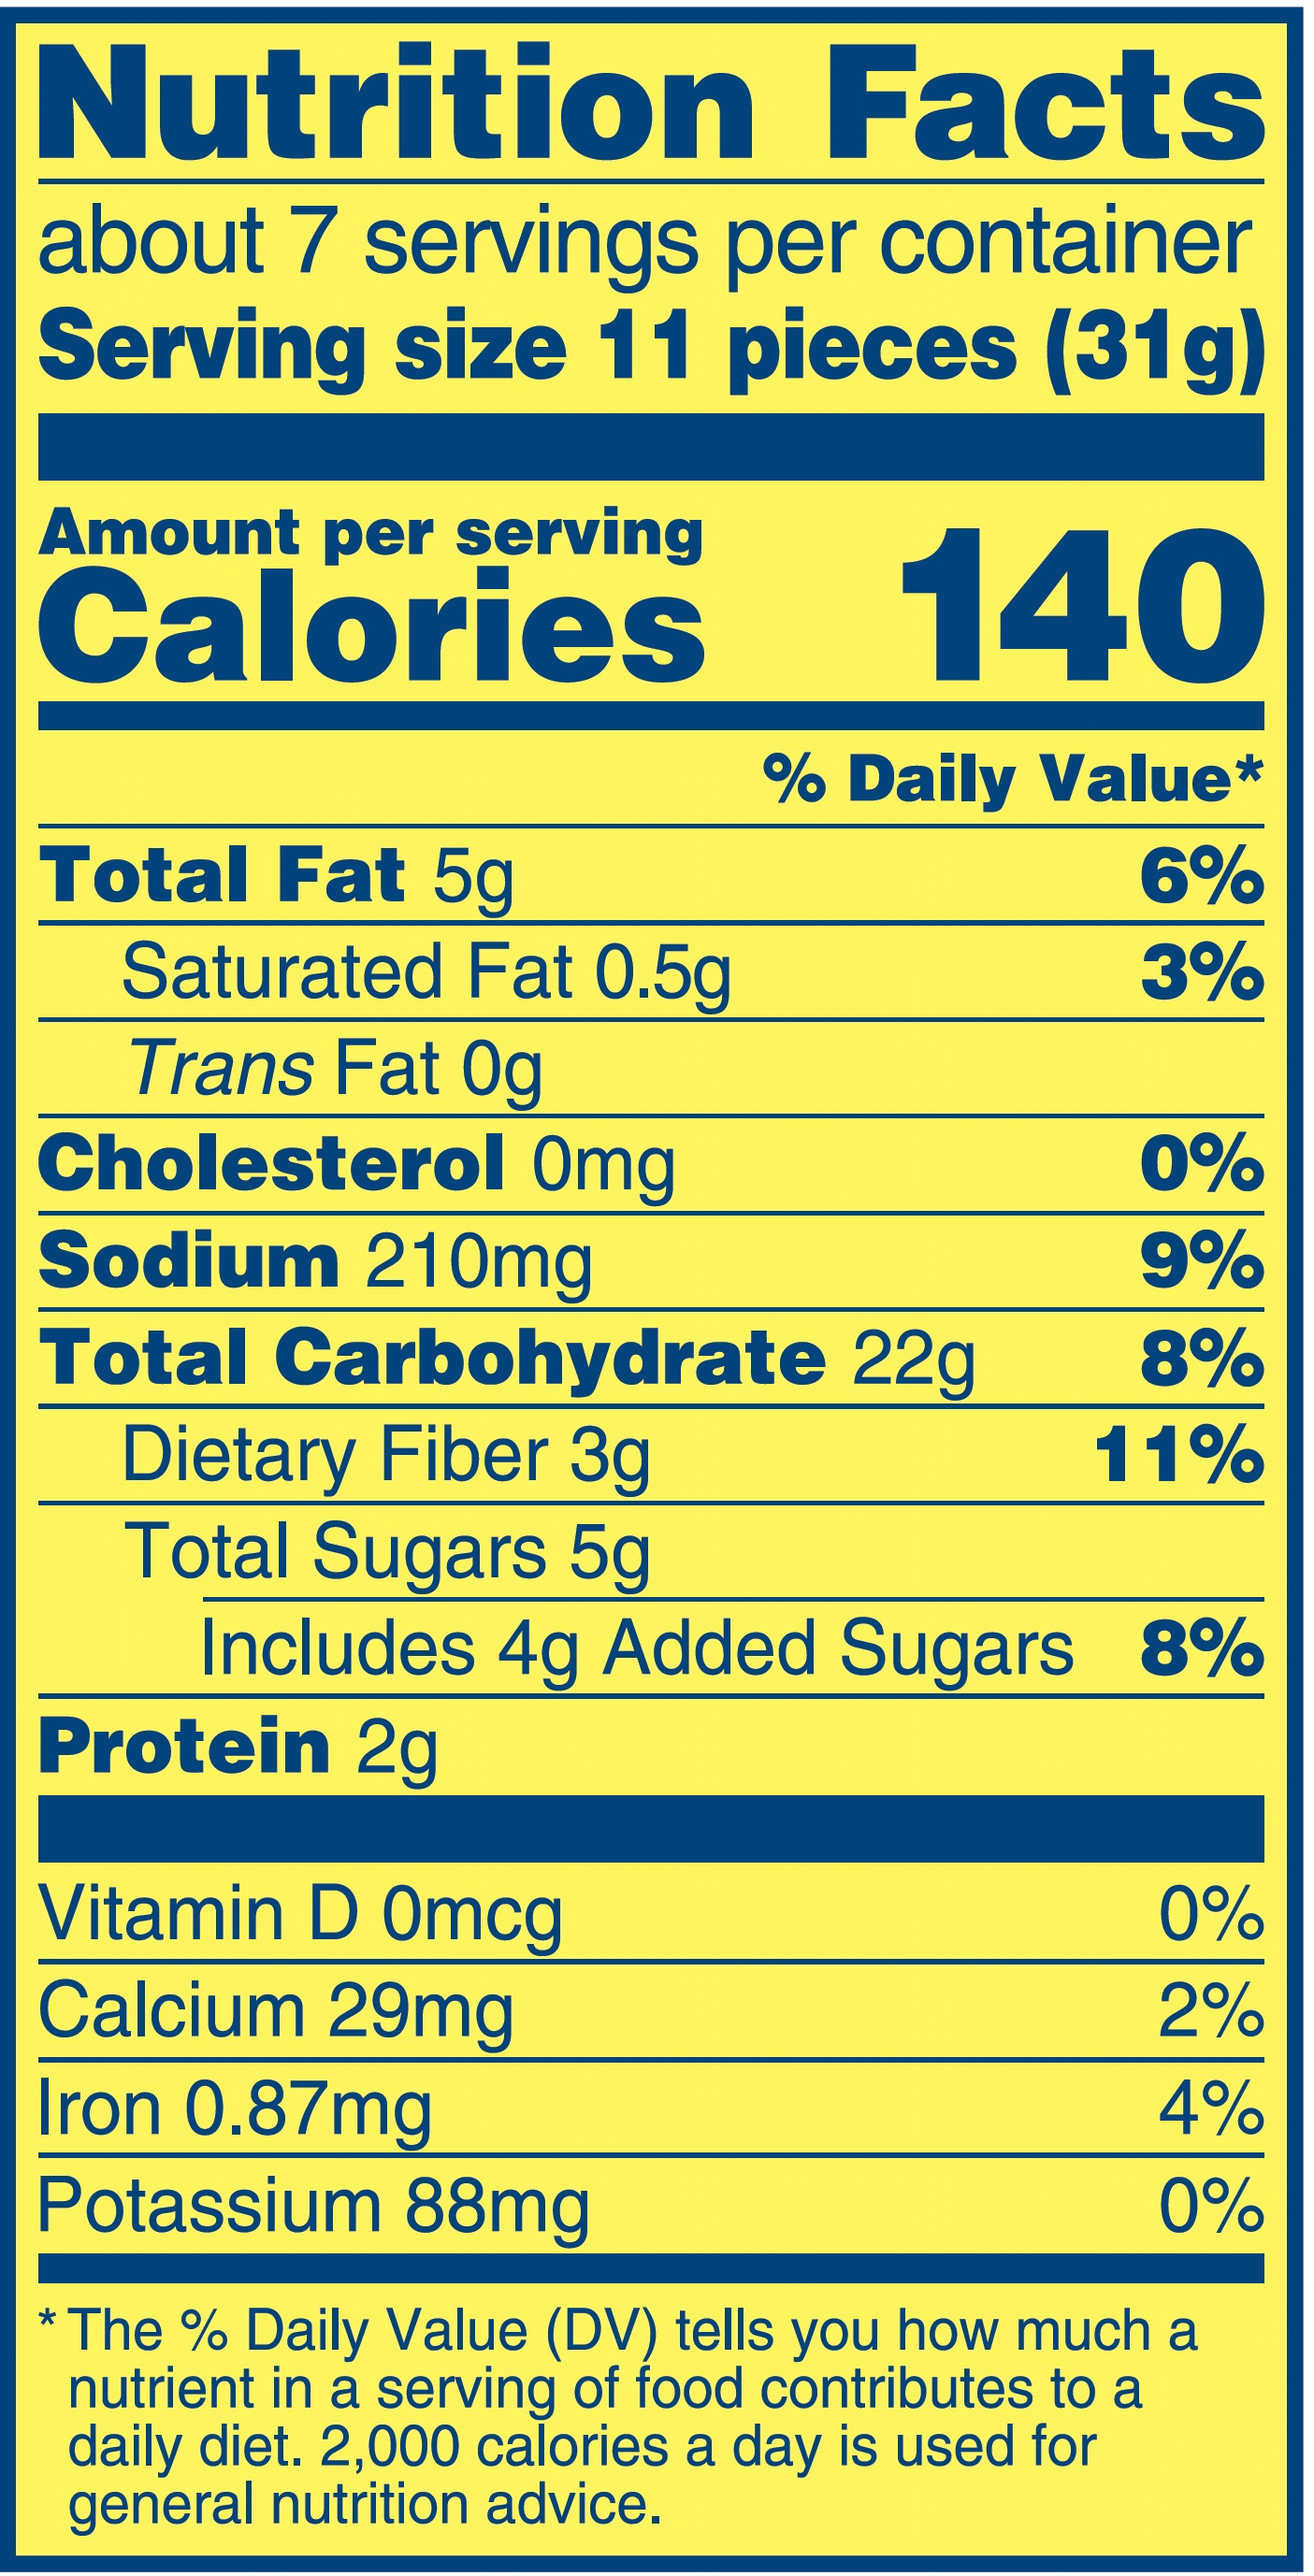 Wheat Thins Nutrition Label : wheat, thins, nutrition, label, Wheat, Thins, Nutrition, Facts, NutritionWalls